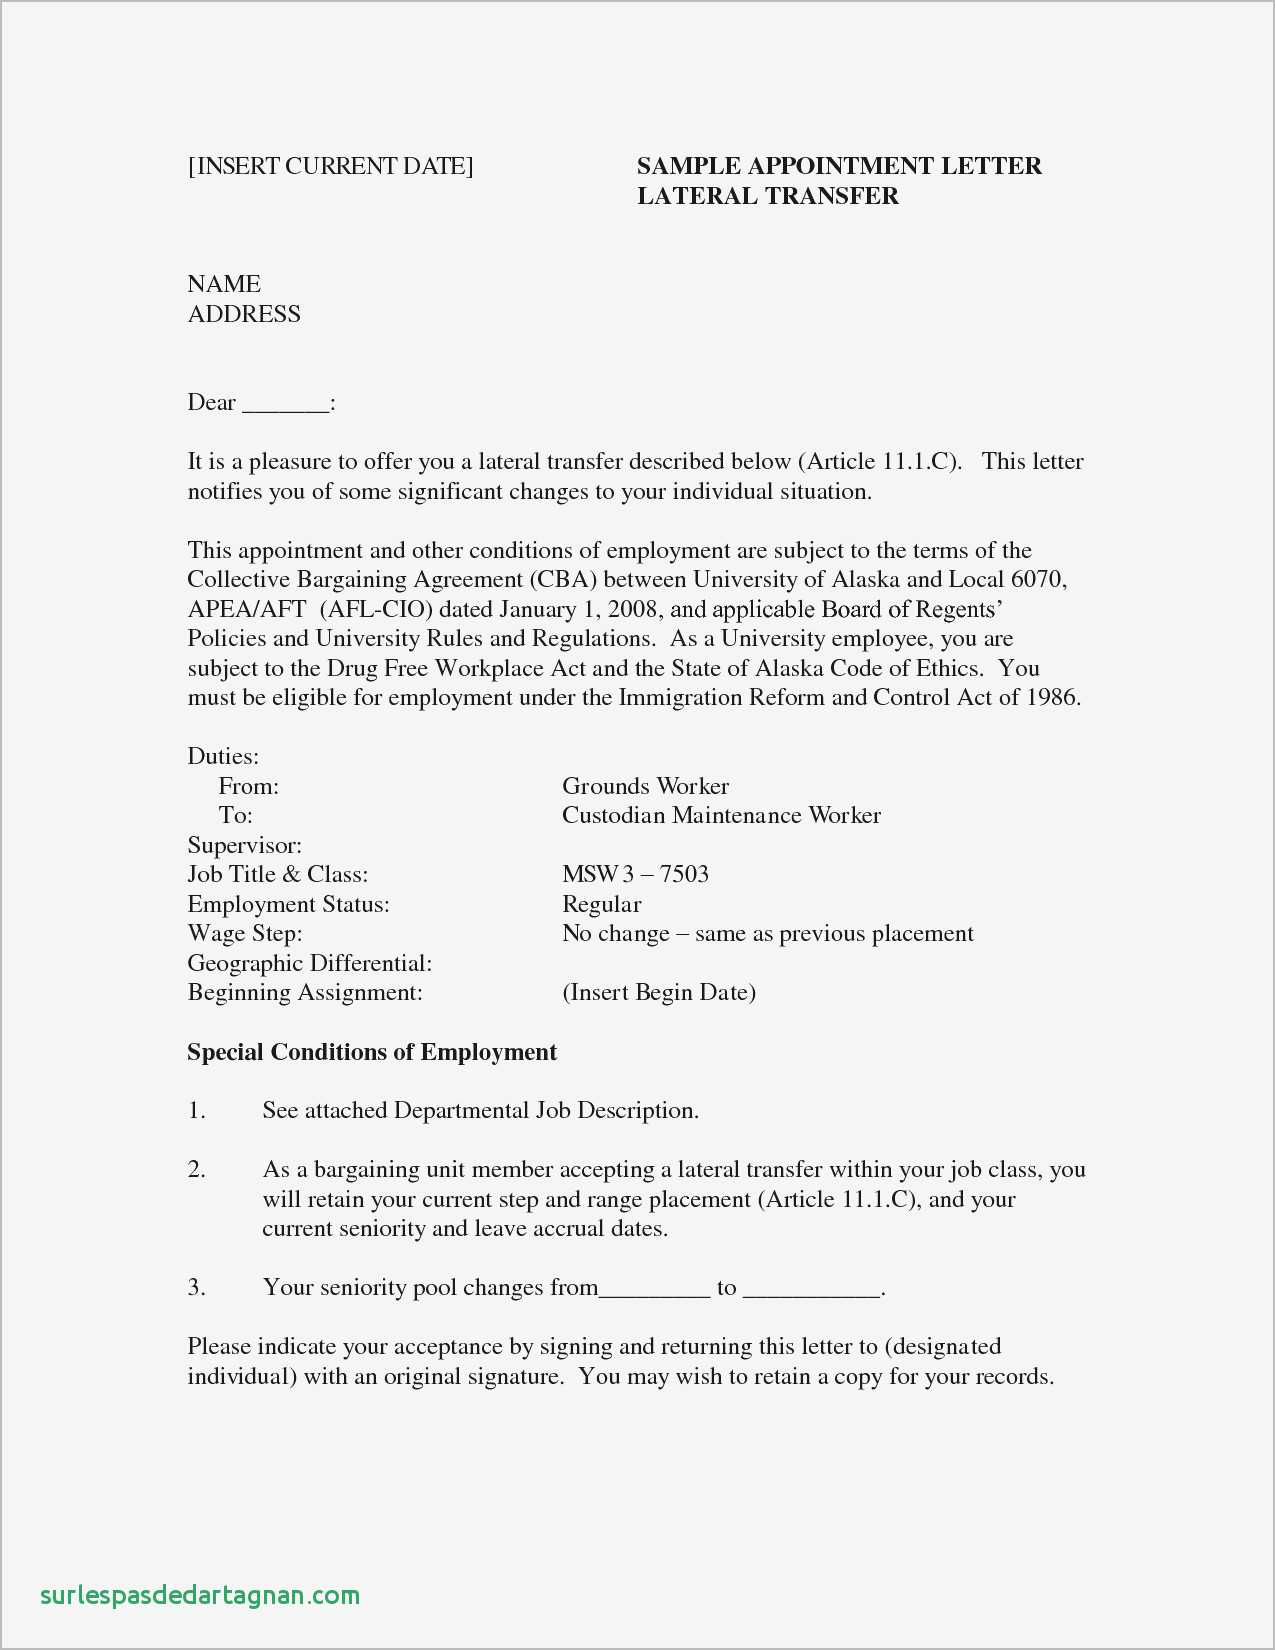 New Hire Letter Template - Job Fer Letter Template Us Copy Od Consultant Cover Letter Fungram